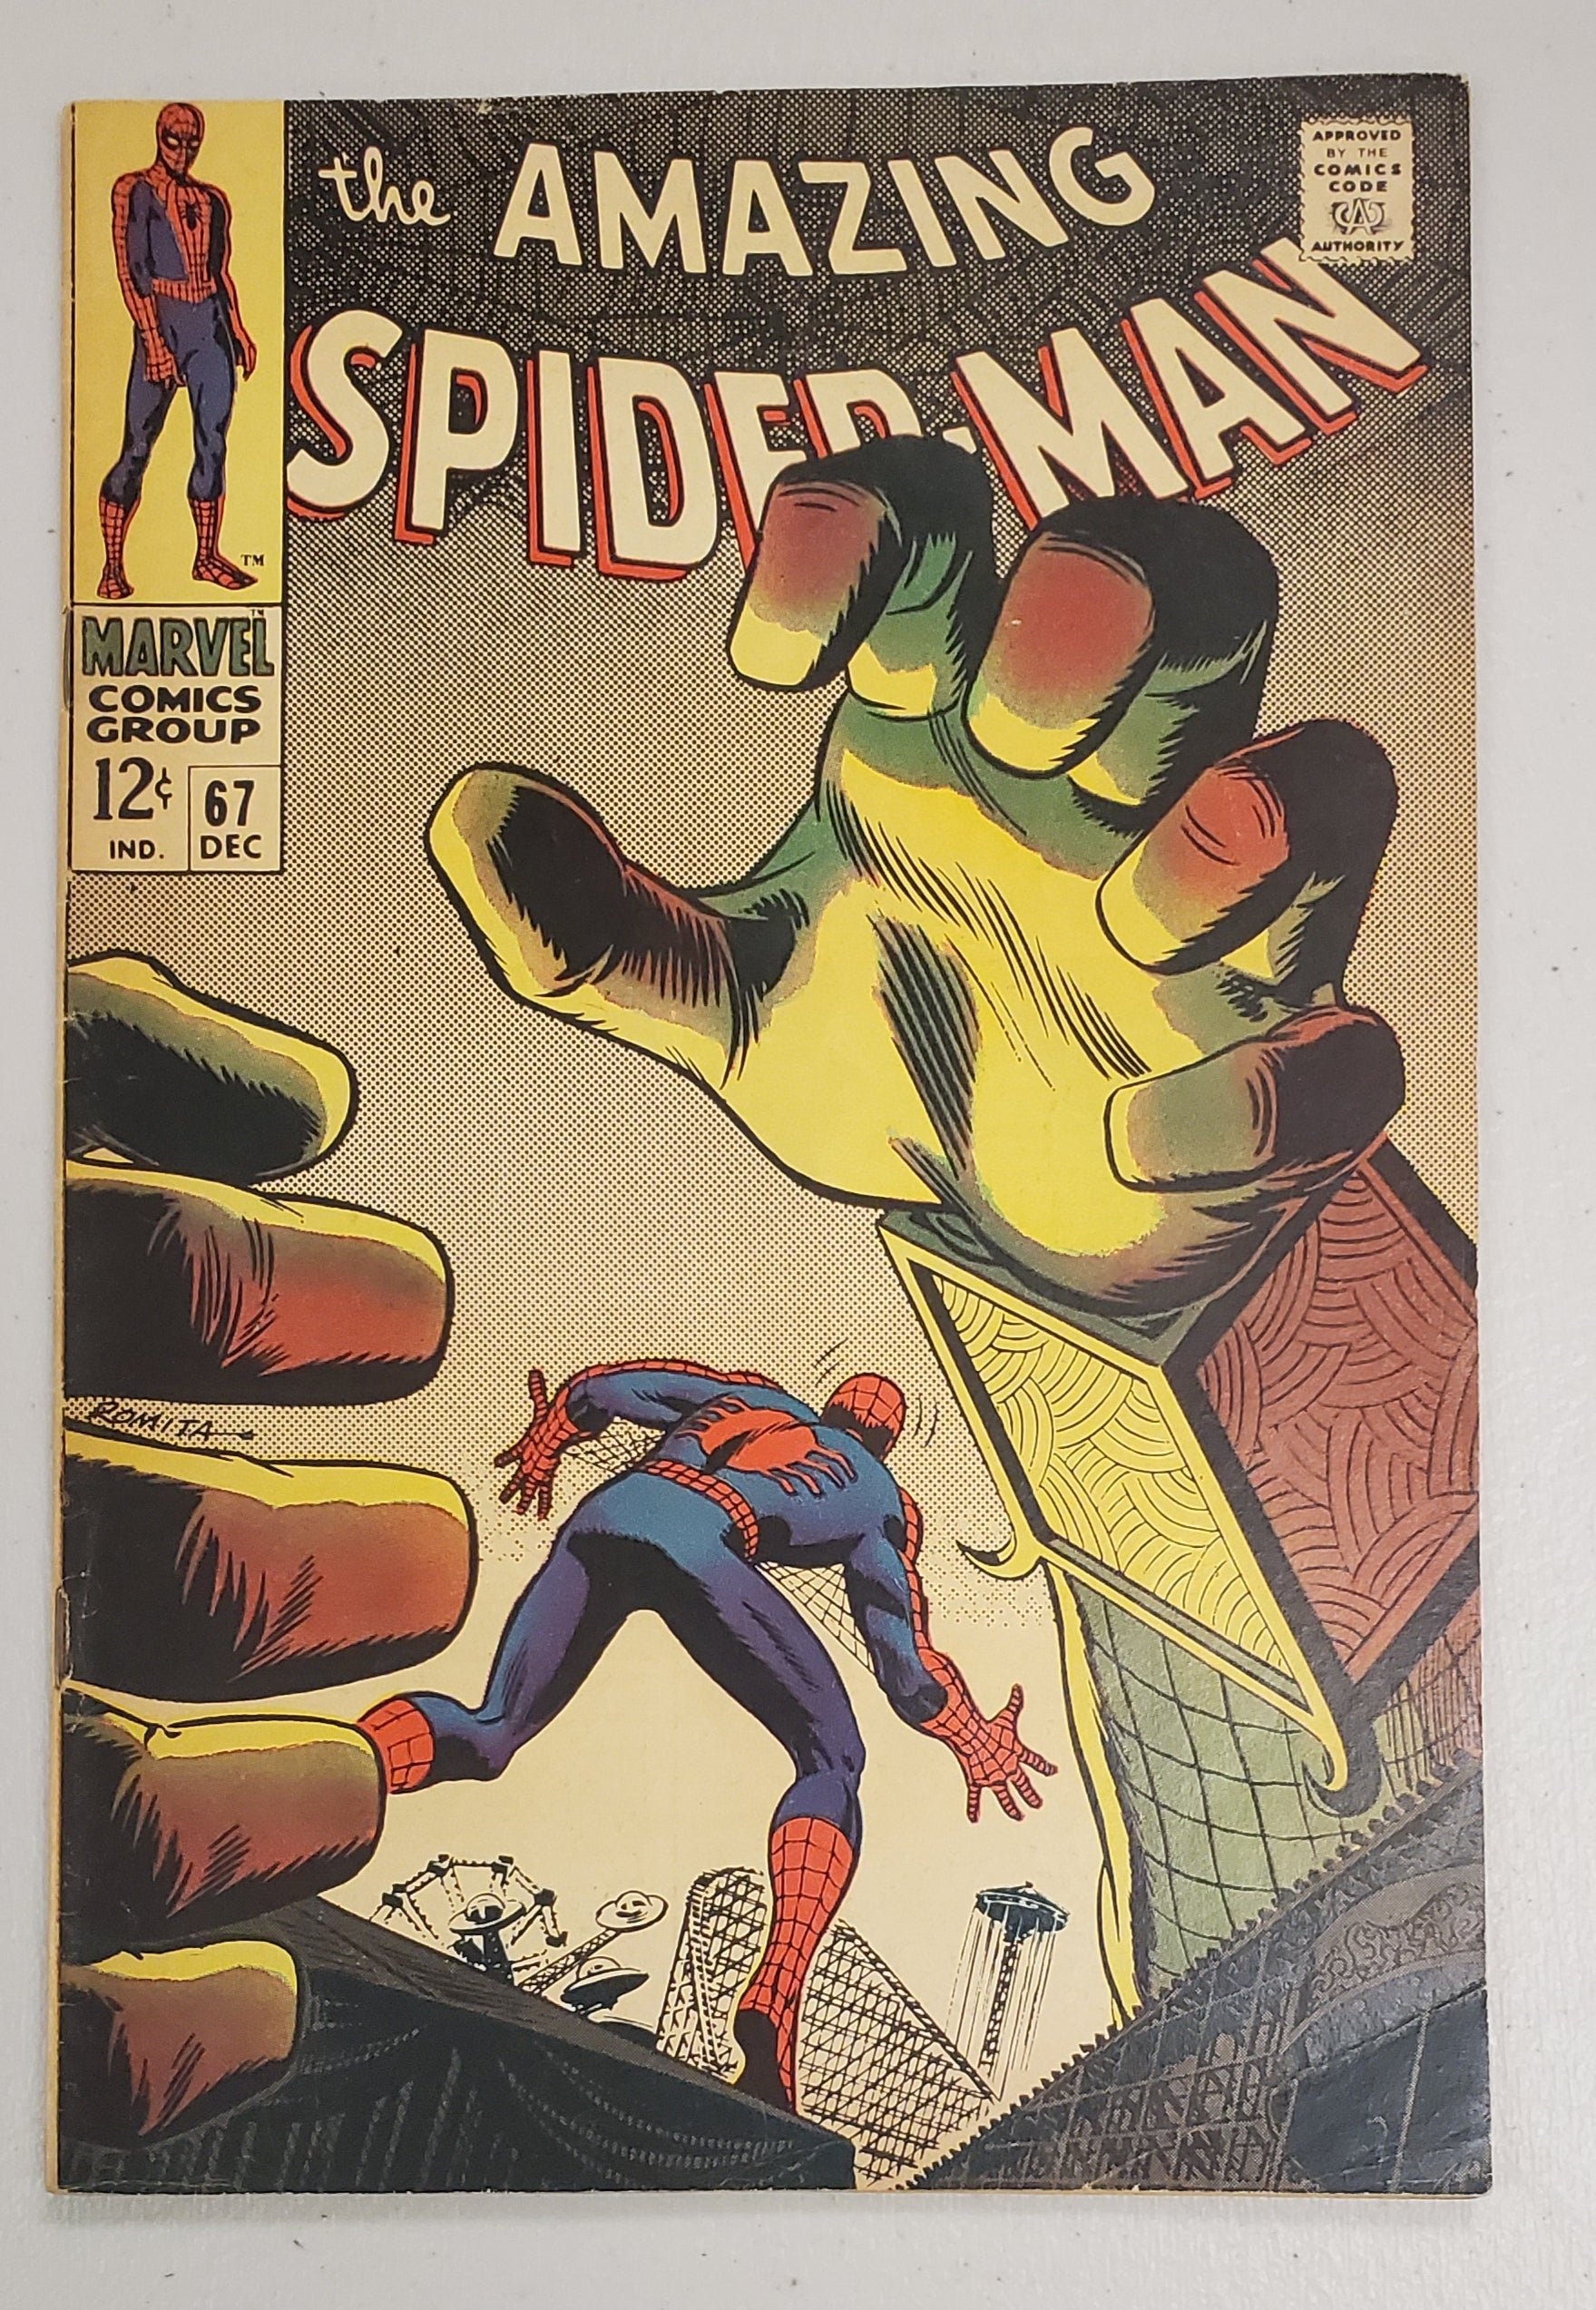 AMAZING SPIDER-MAN #67 1968